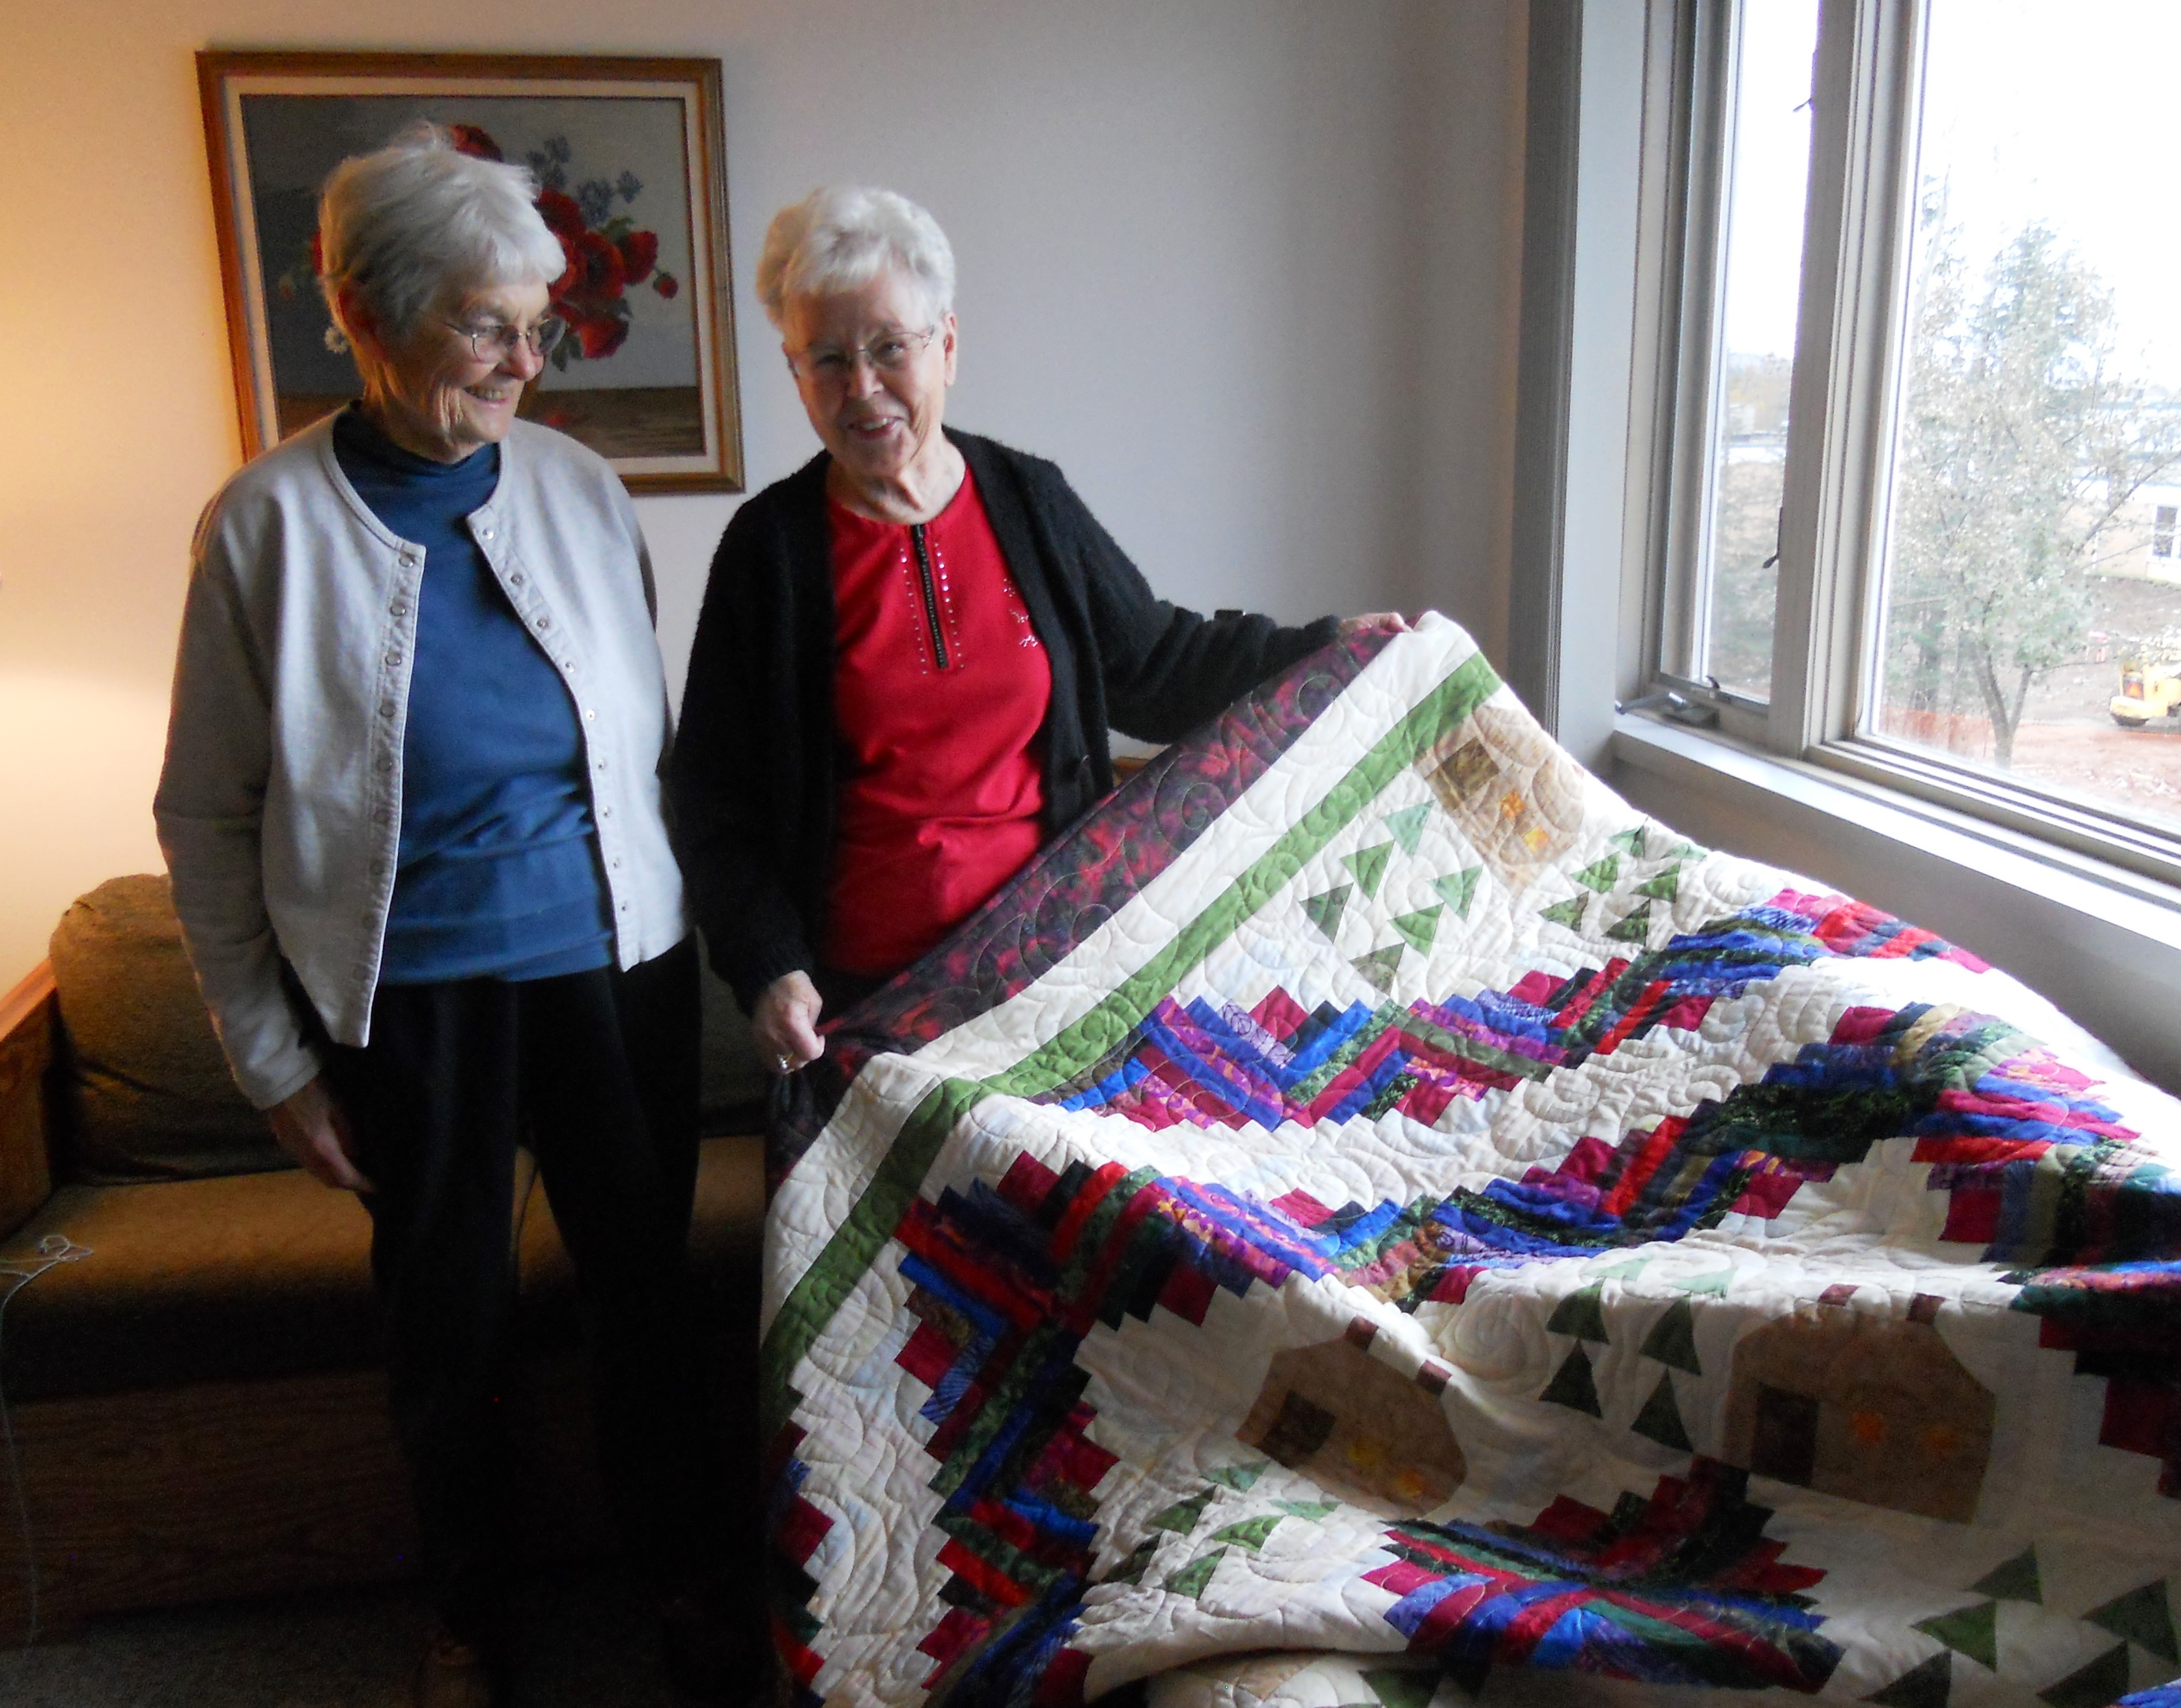 Carol Harris' quilt raised $1660 through our quilt raffle in 2015. Local resident, Lori Thompson (right) was the luck winner. Look for another Care Partners Quilt Raffle this summer!